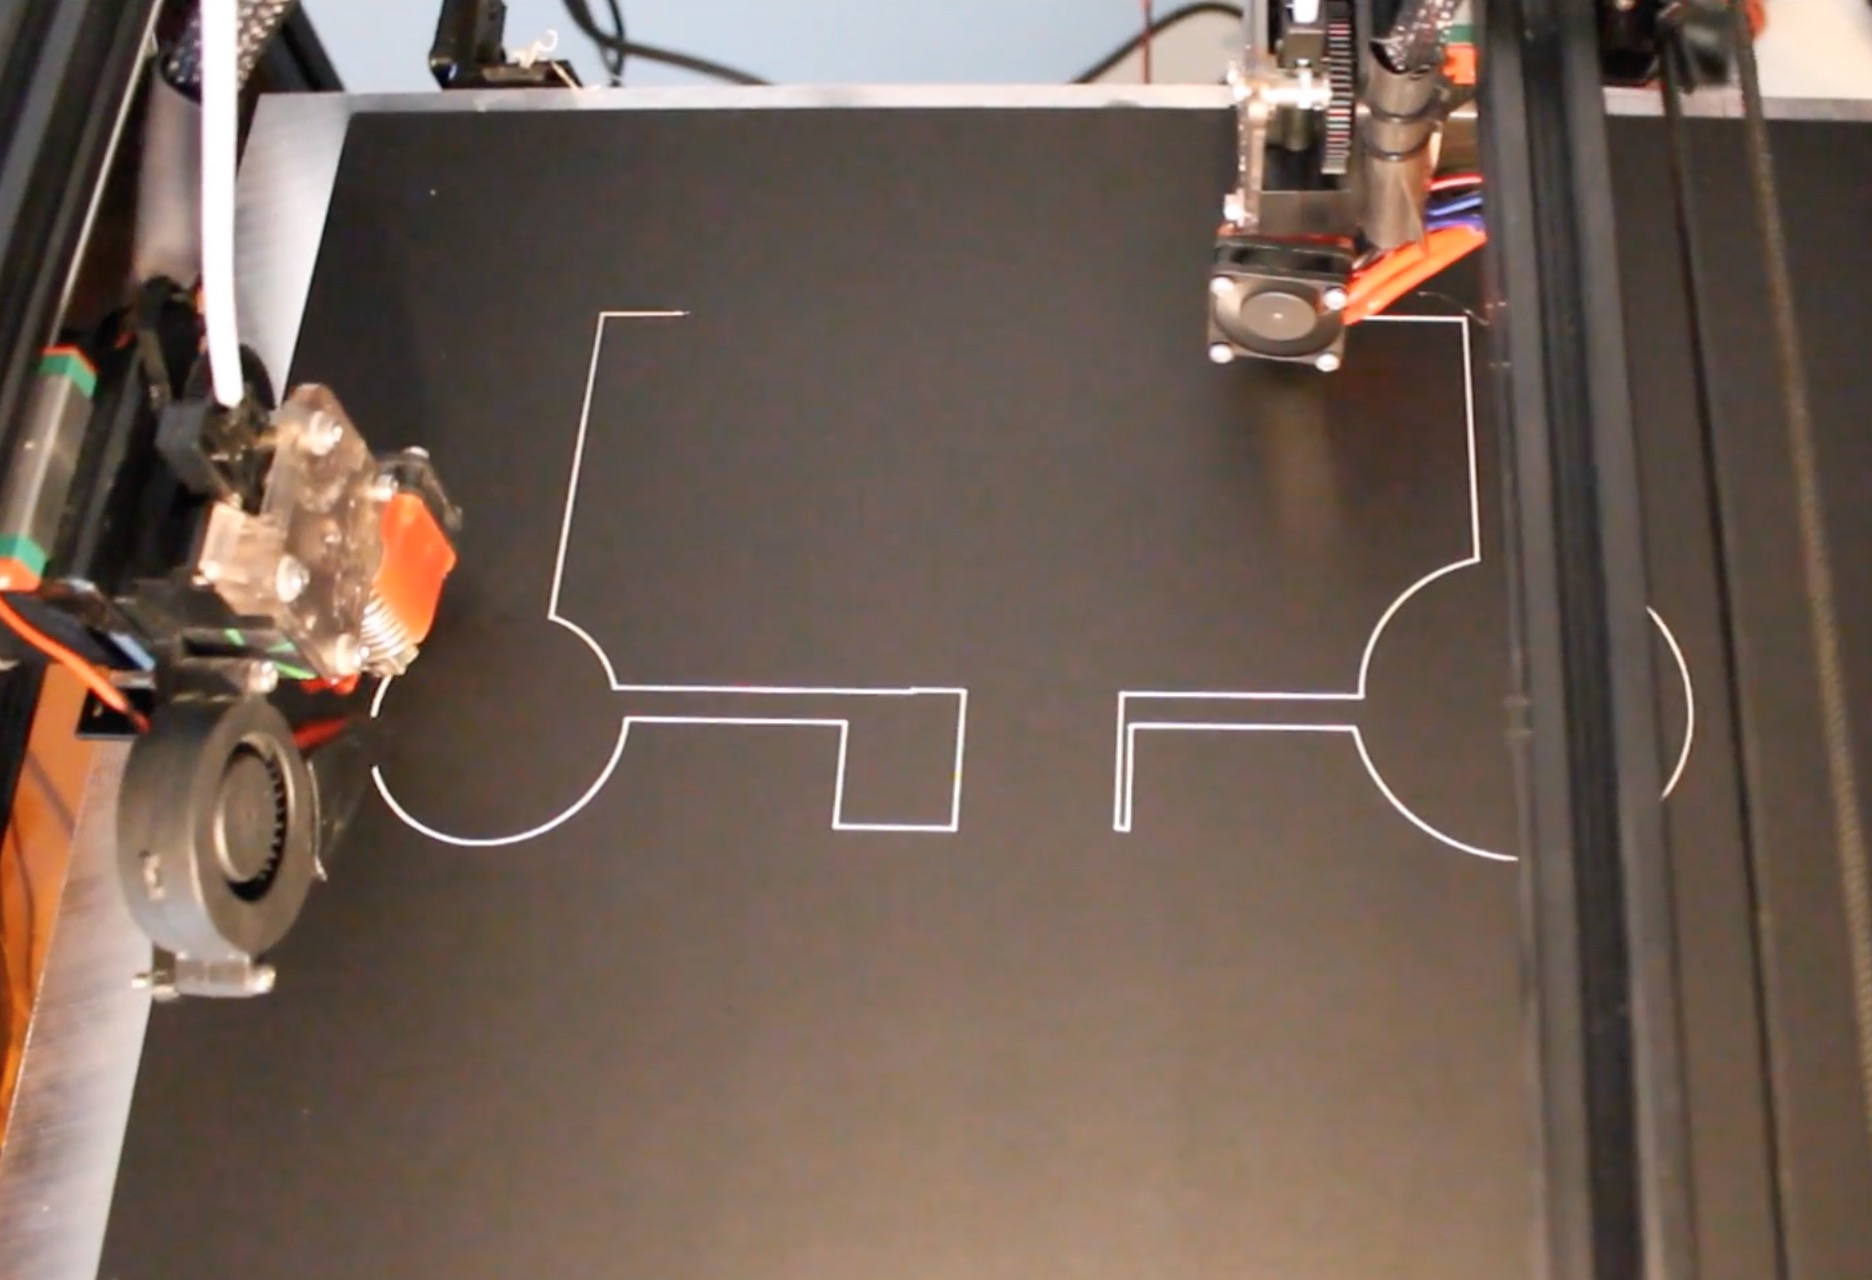 3D printing two items at once with the Modix Tango